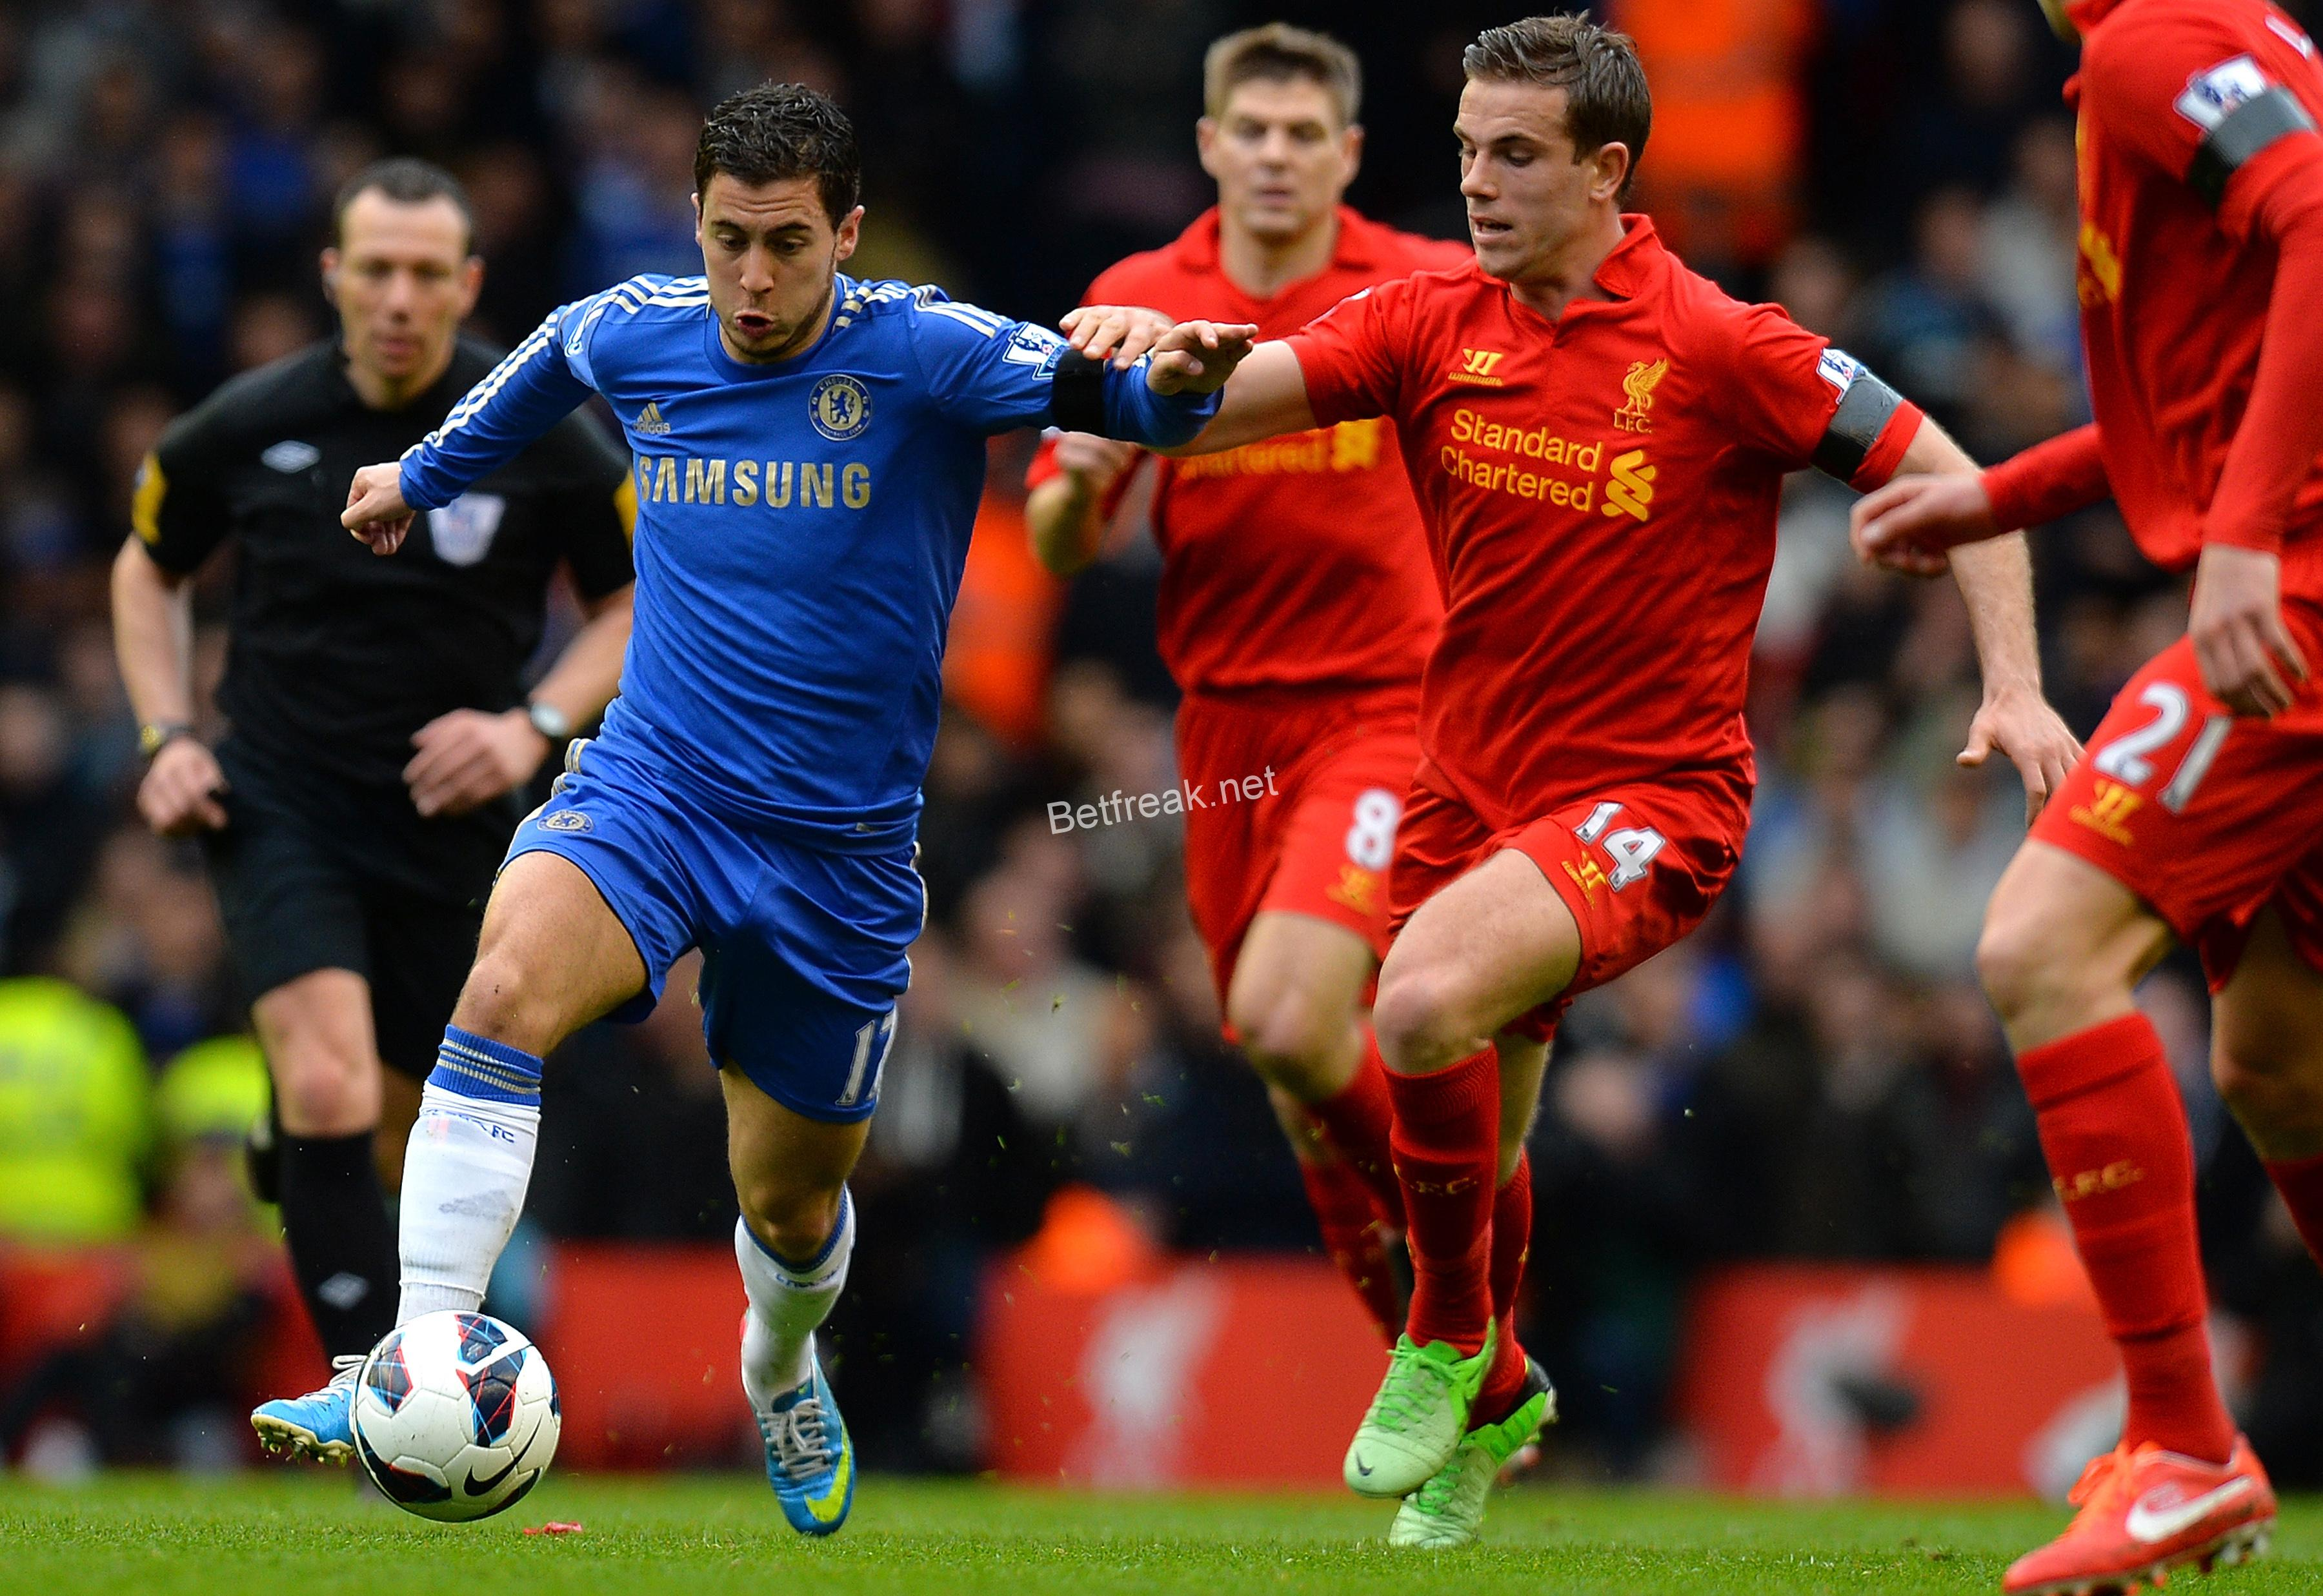 Liverpool Vs Chelsea (Prediction, Preview & Betting Tips